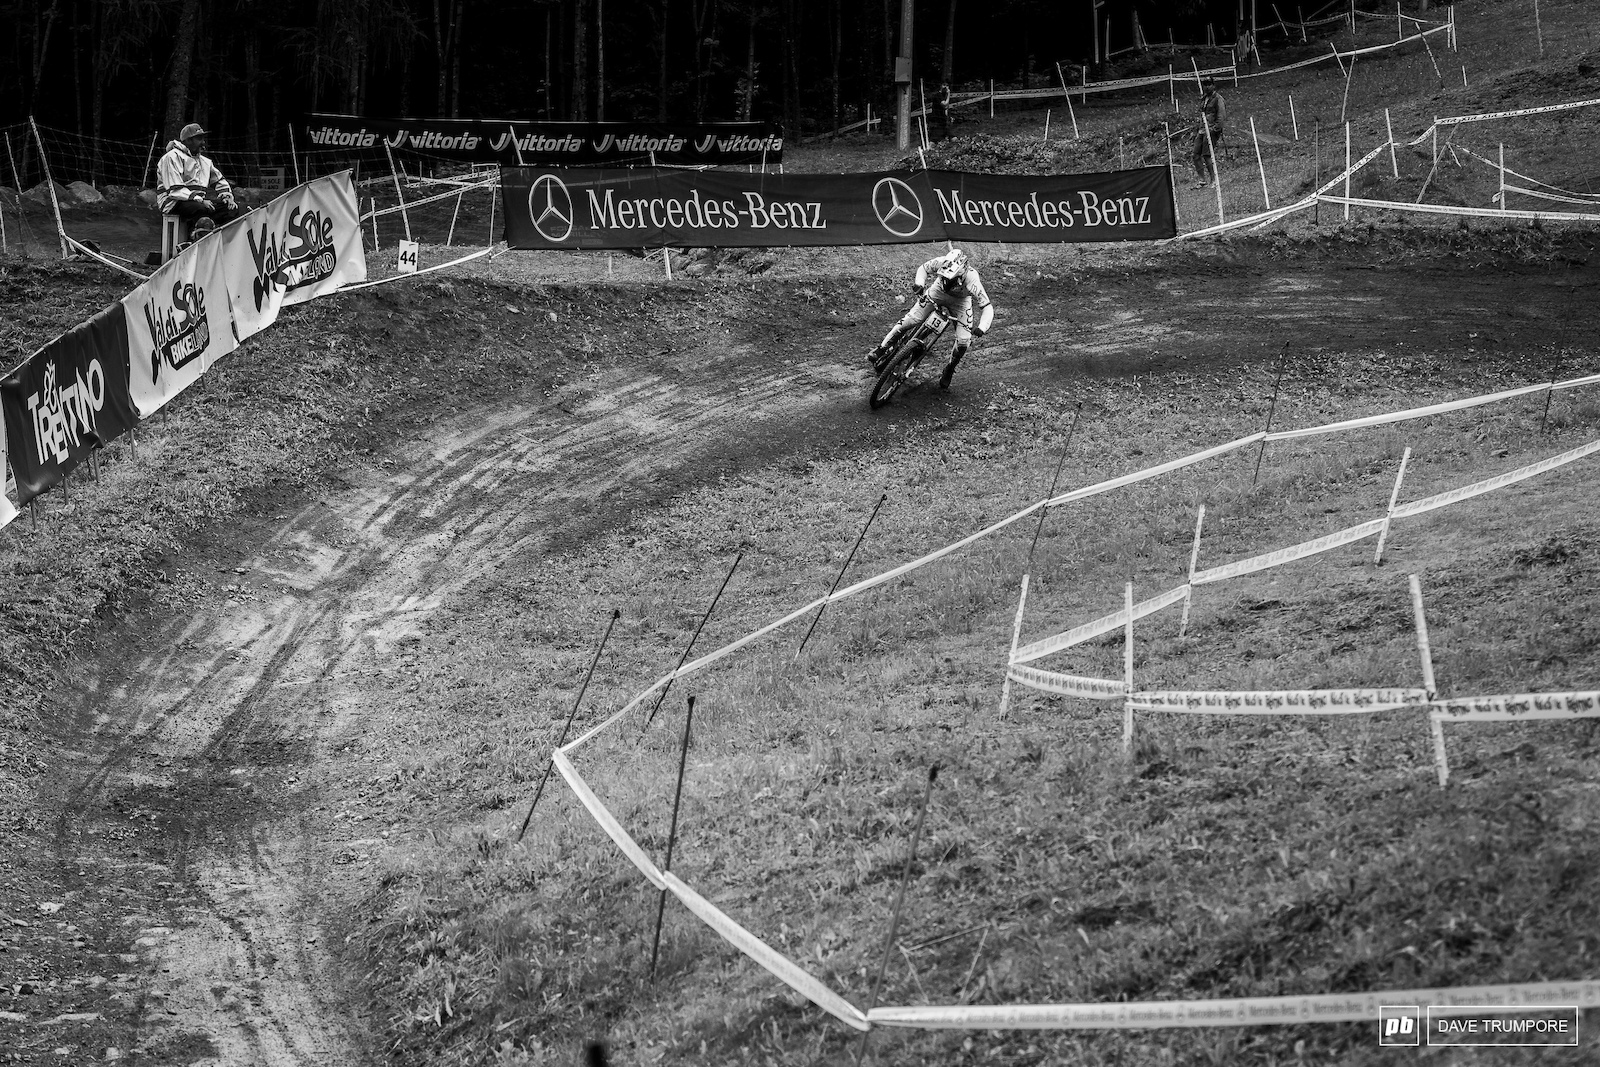 Loic Bruni getting a big drift on around the final corner that even Sam Hill would be proud of.